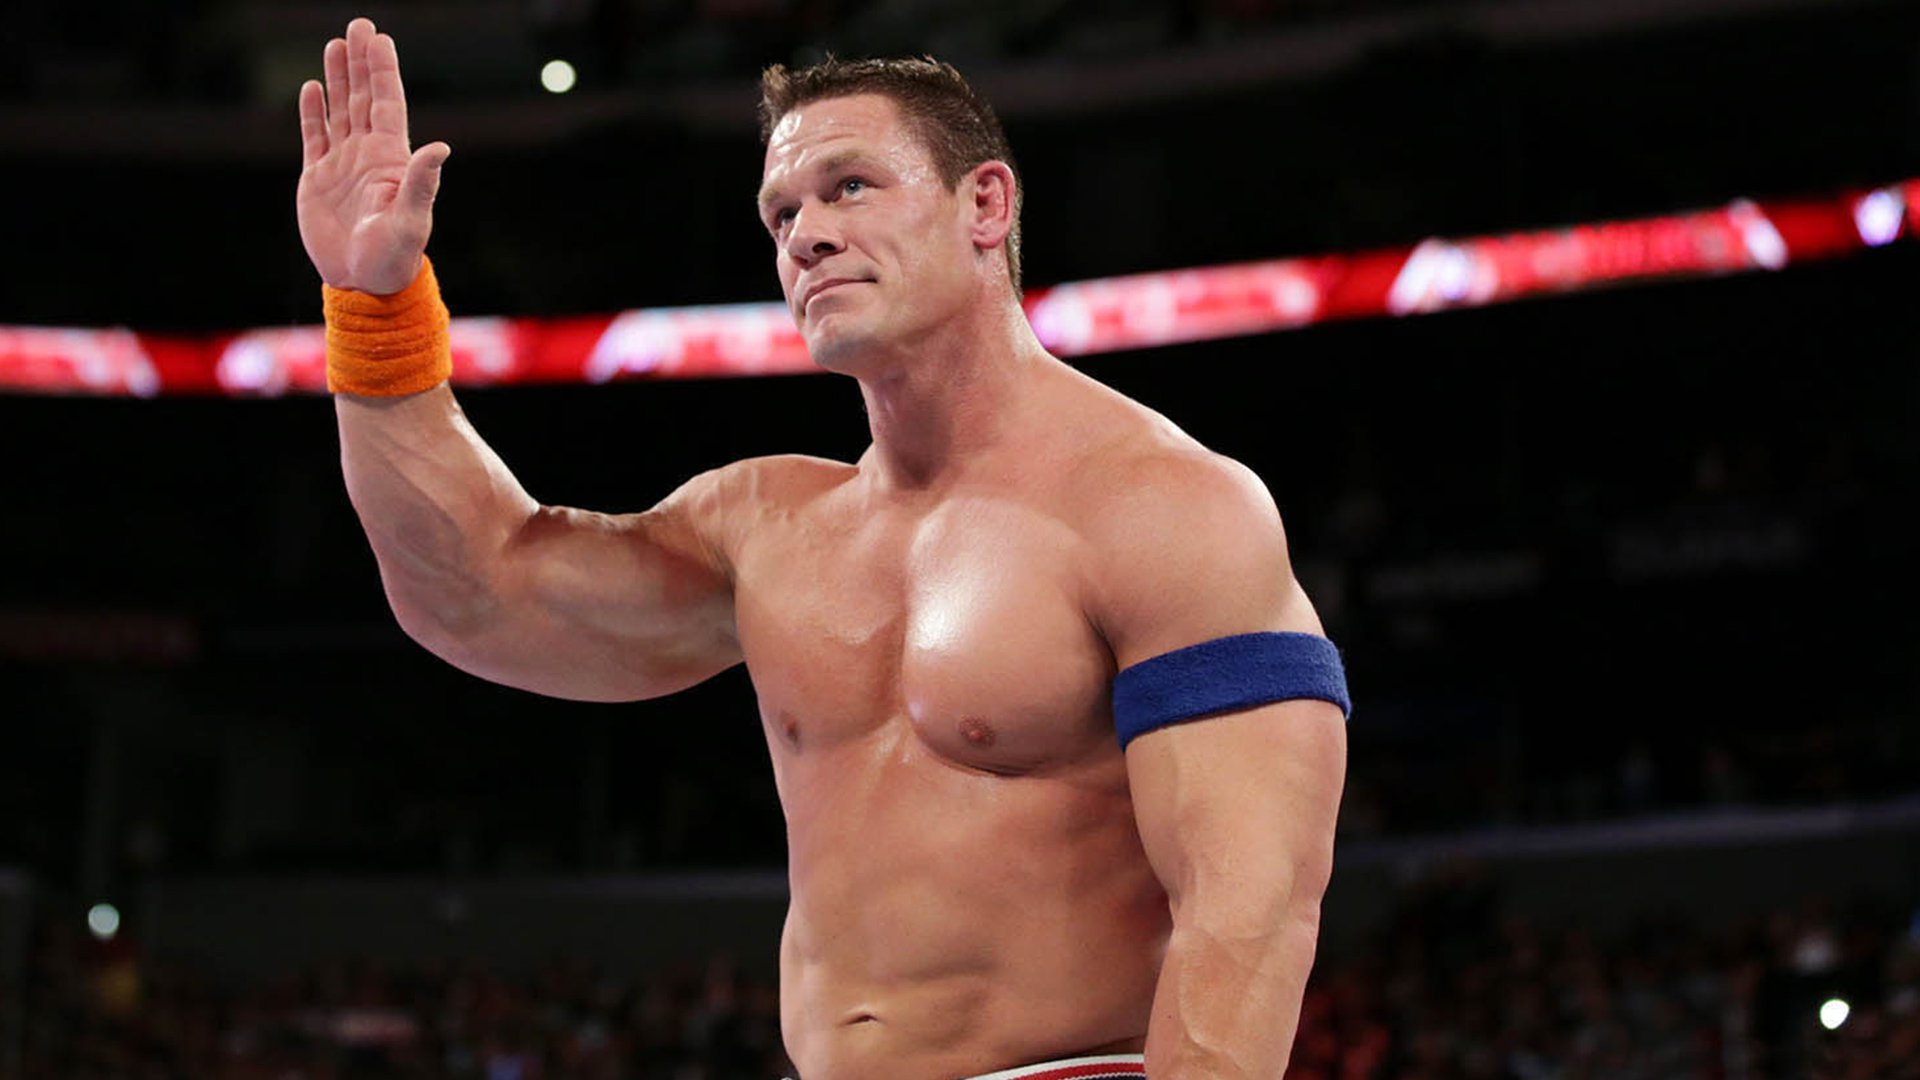 John Cena officially out of WWE Crown Jewel -- will be replaced by Bobby Lashley